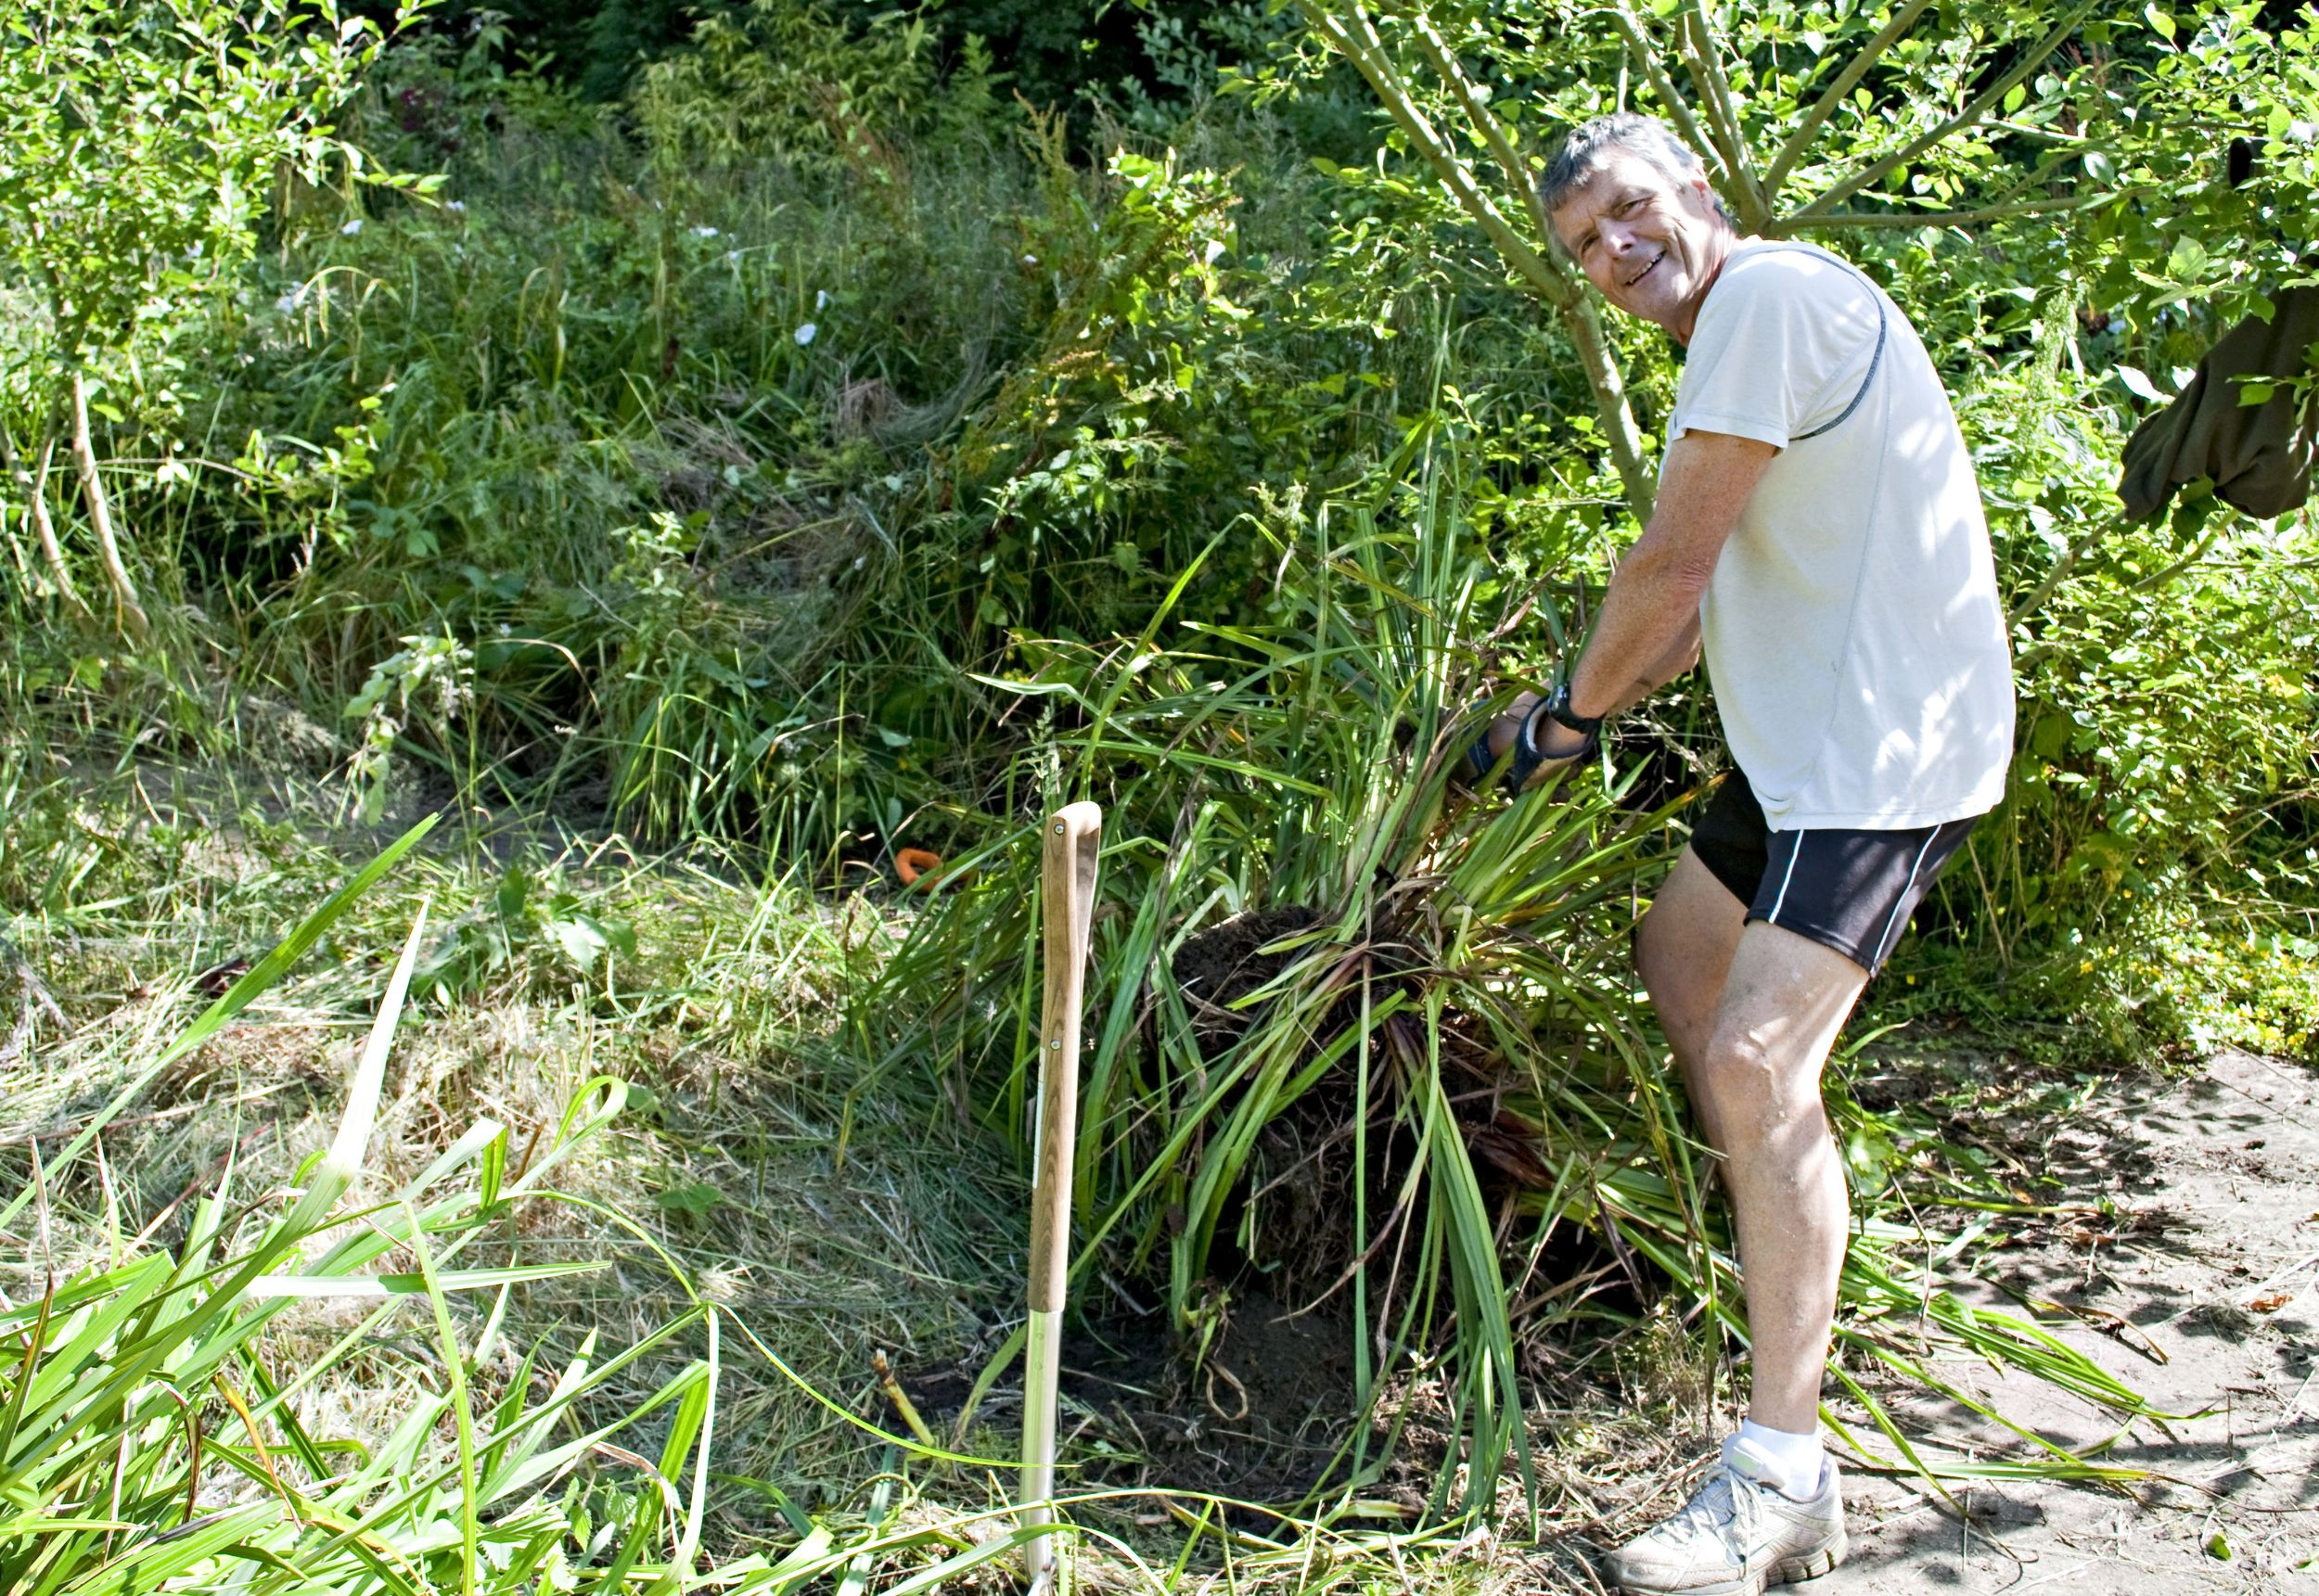 Dunc's dad getting stuck into helping us clear brambles and sedge for or veggie patch